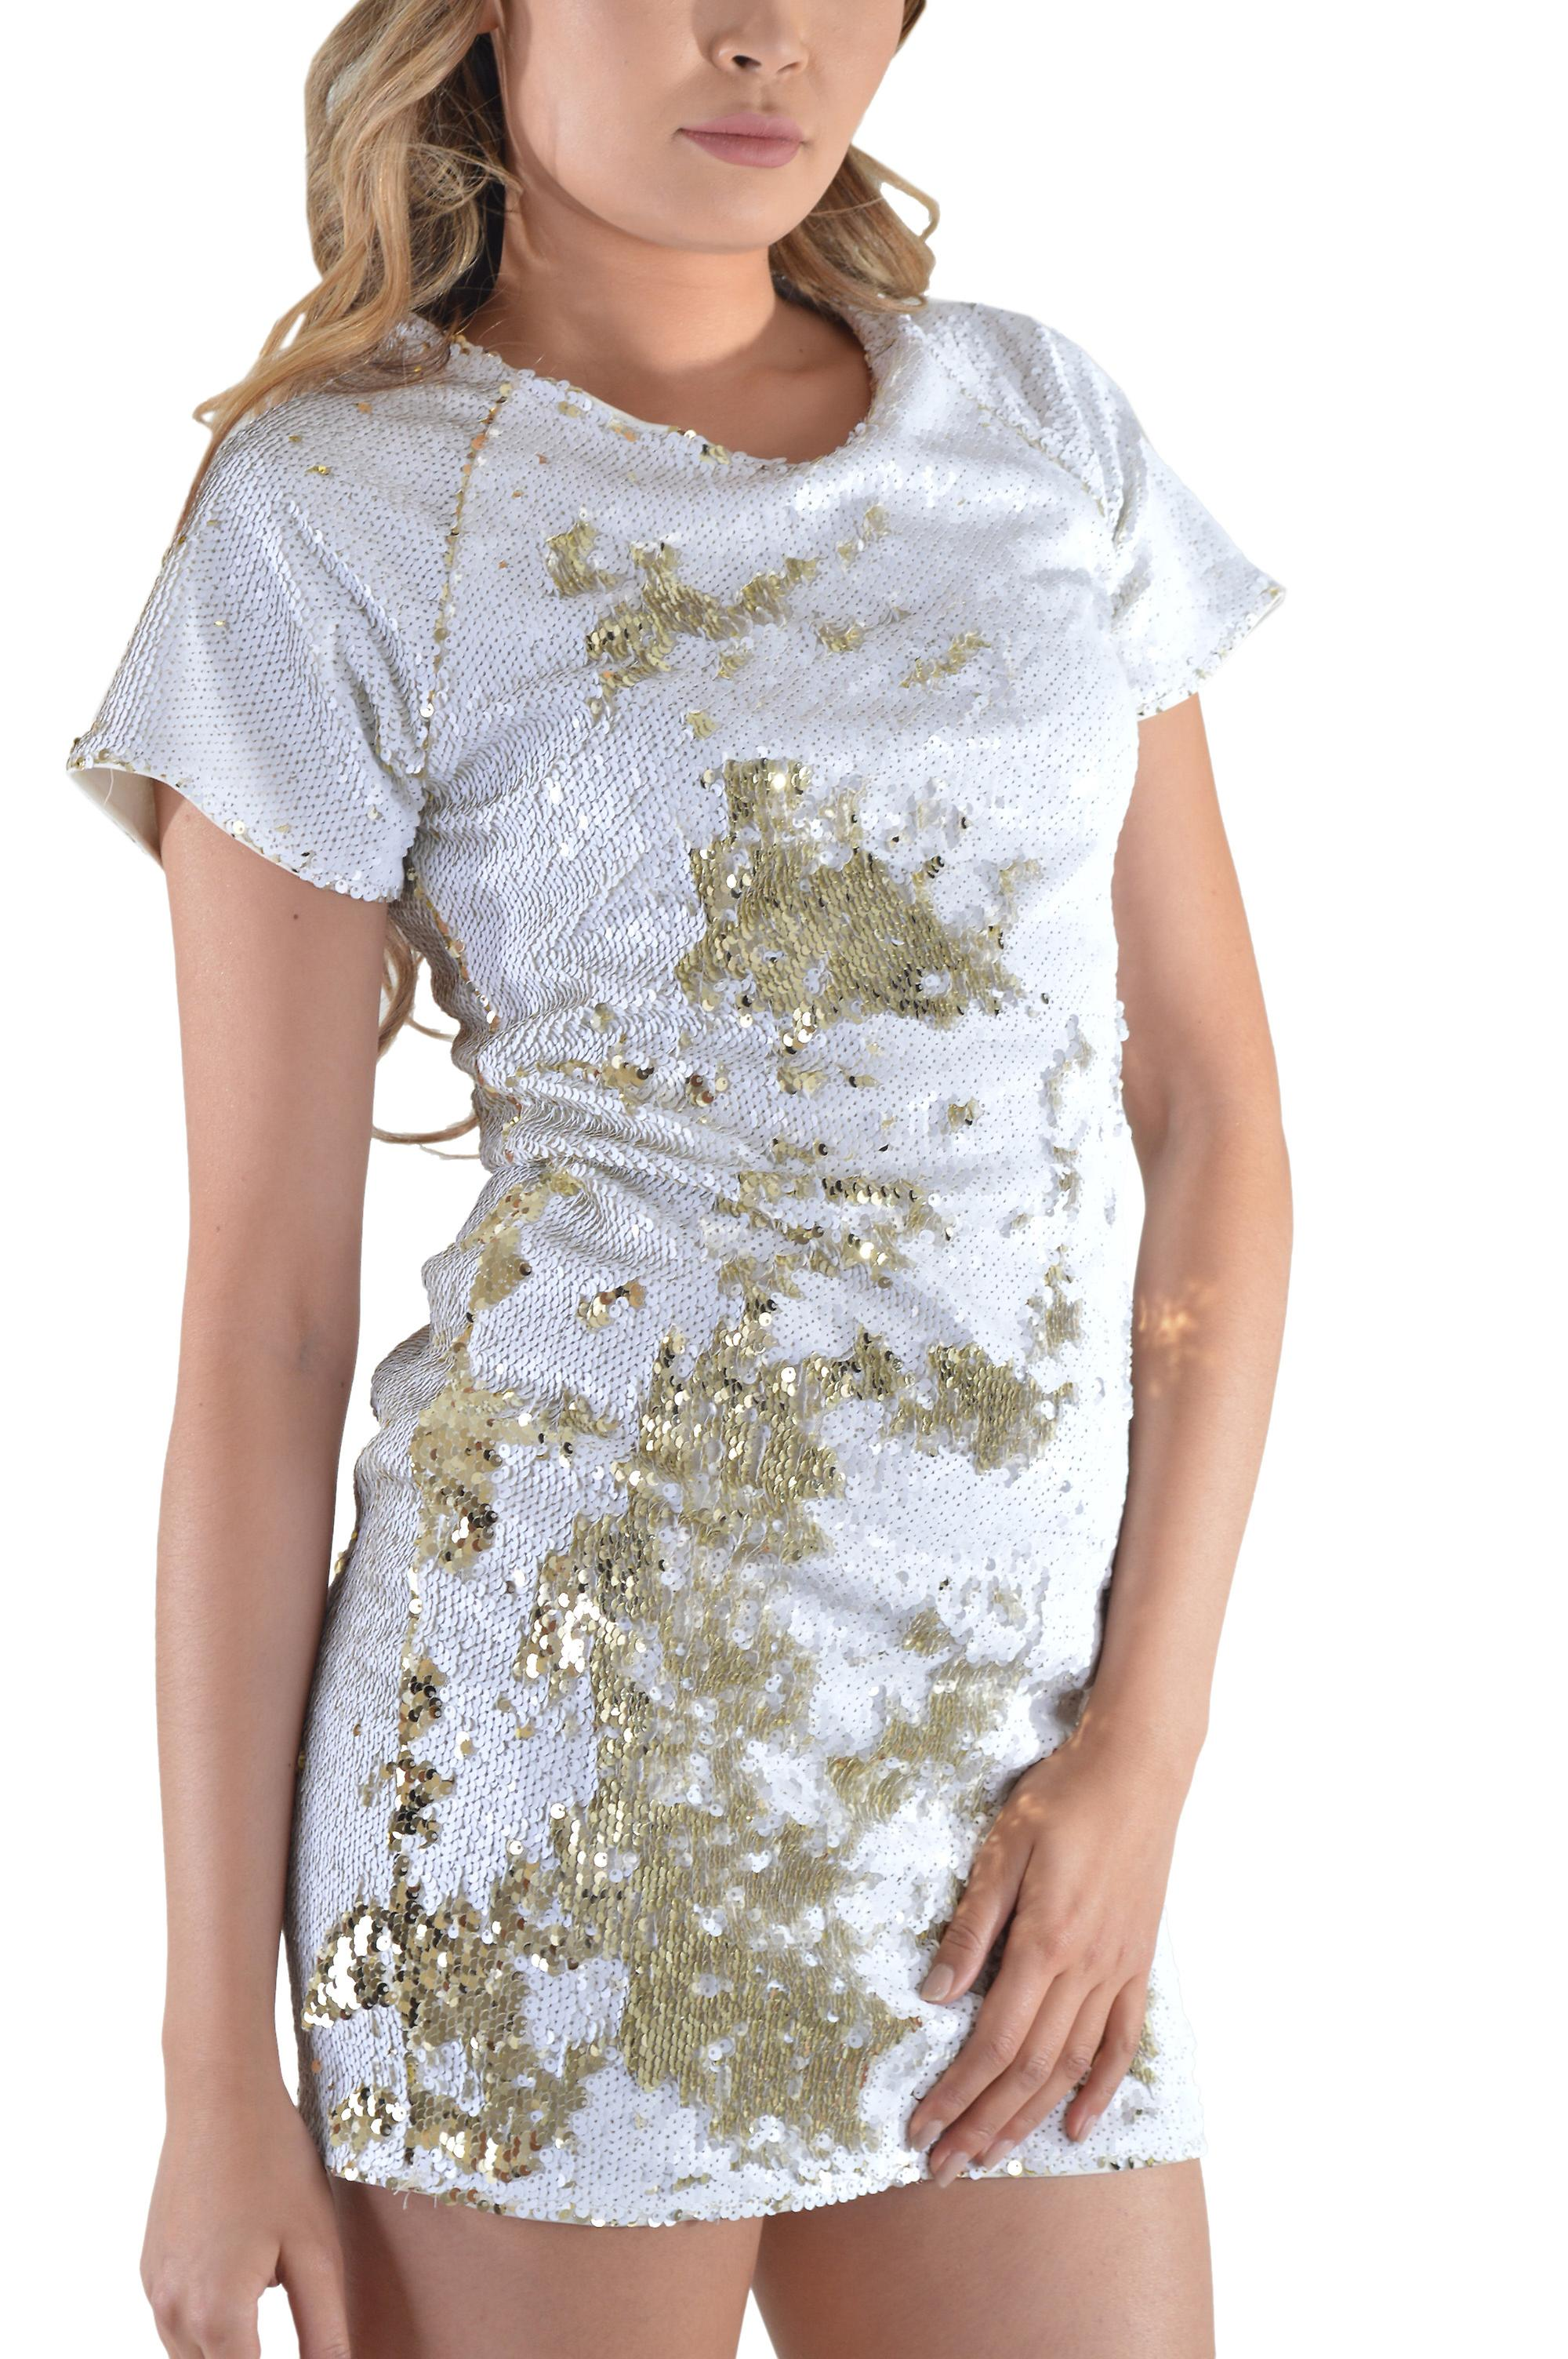 Lovemystyle White And Gold Sequin T-shirt Shift Dress